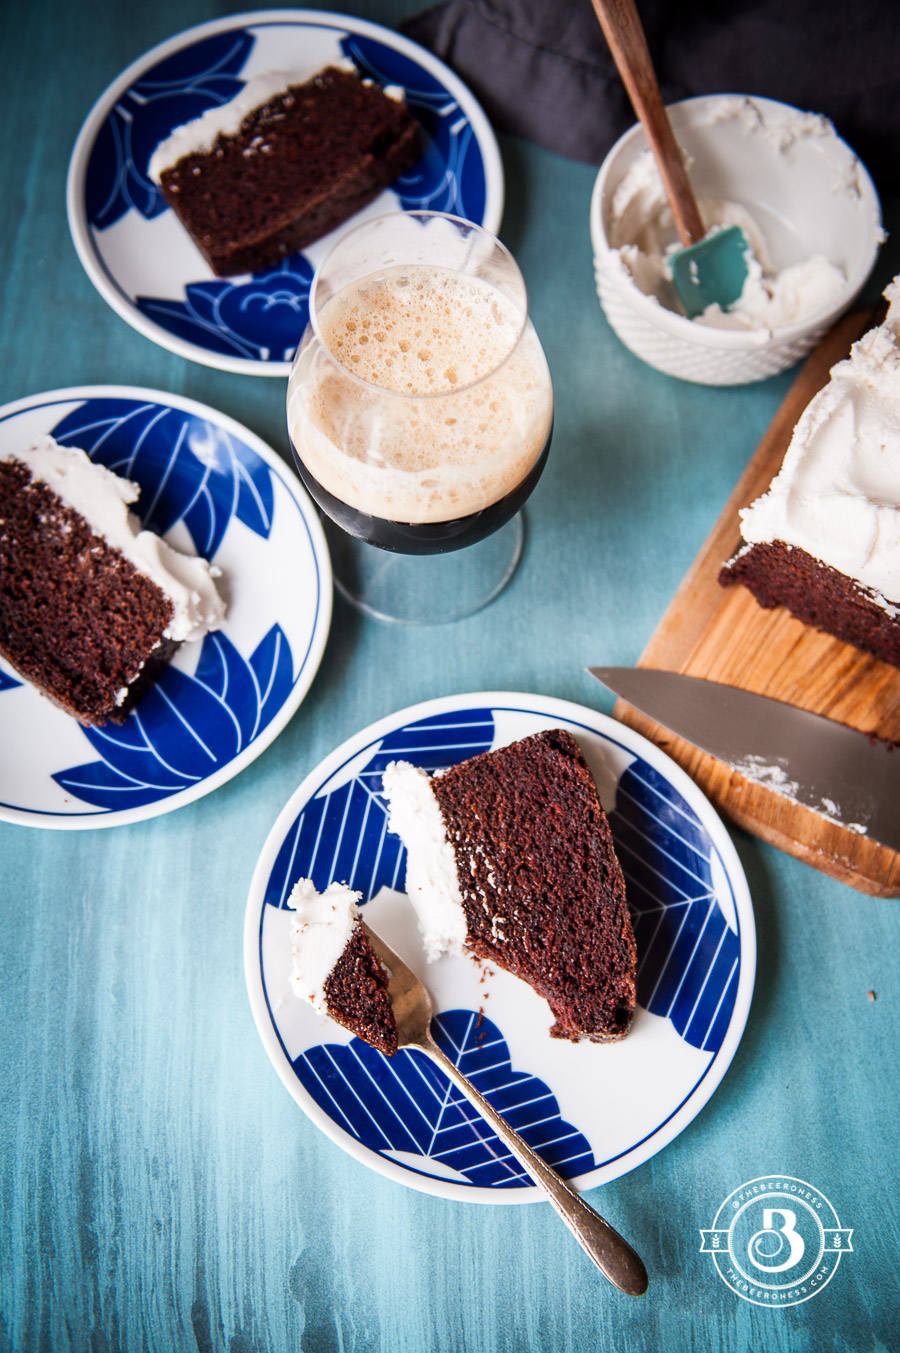 Awesome Chocolate Stout Loaf Cake that Happens to Be Vegan - The ...